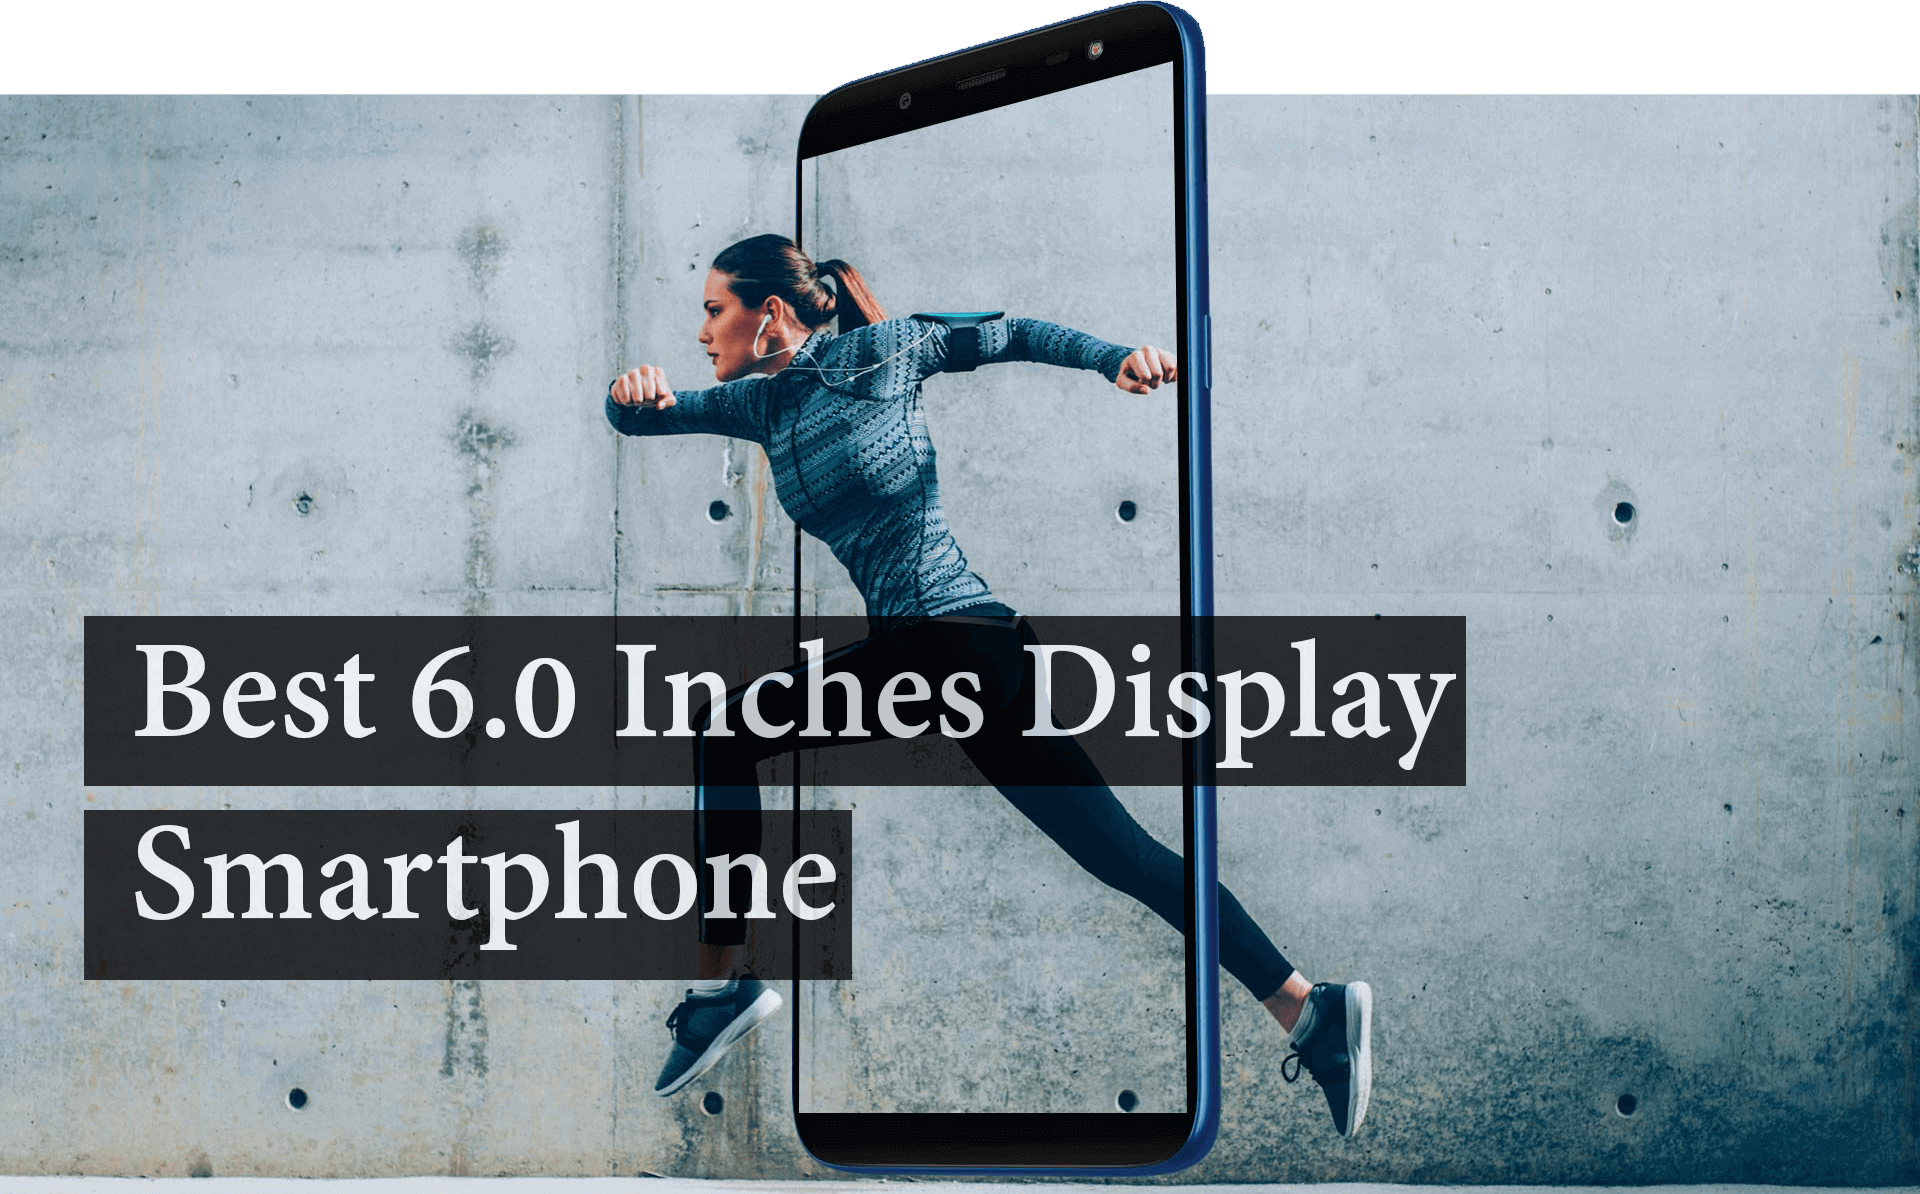 Best 6.0 inches display smartphone